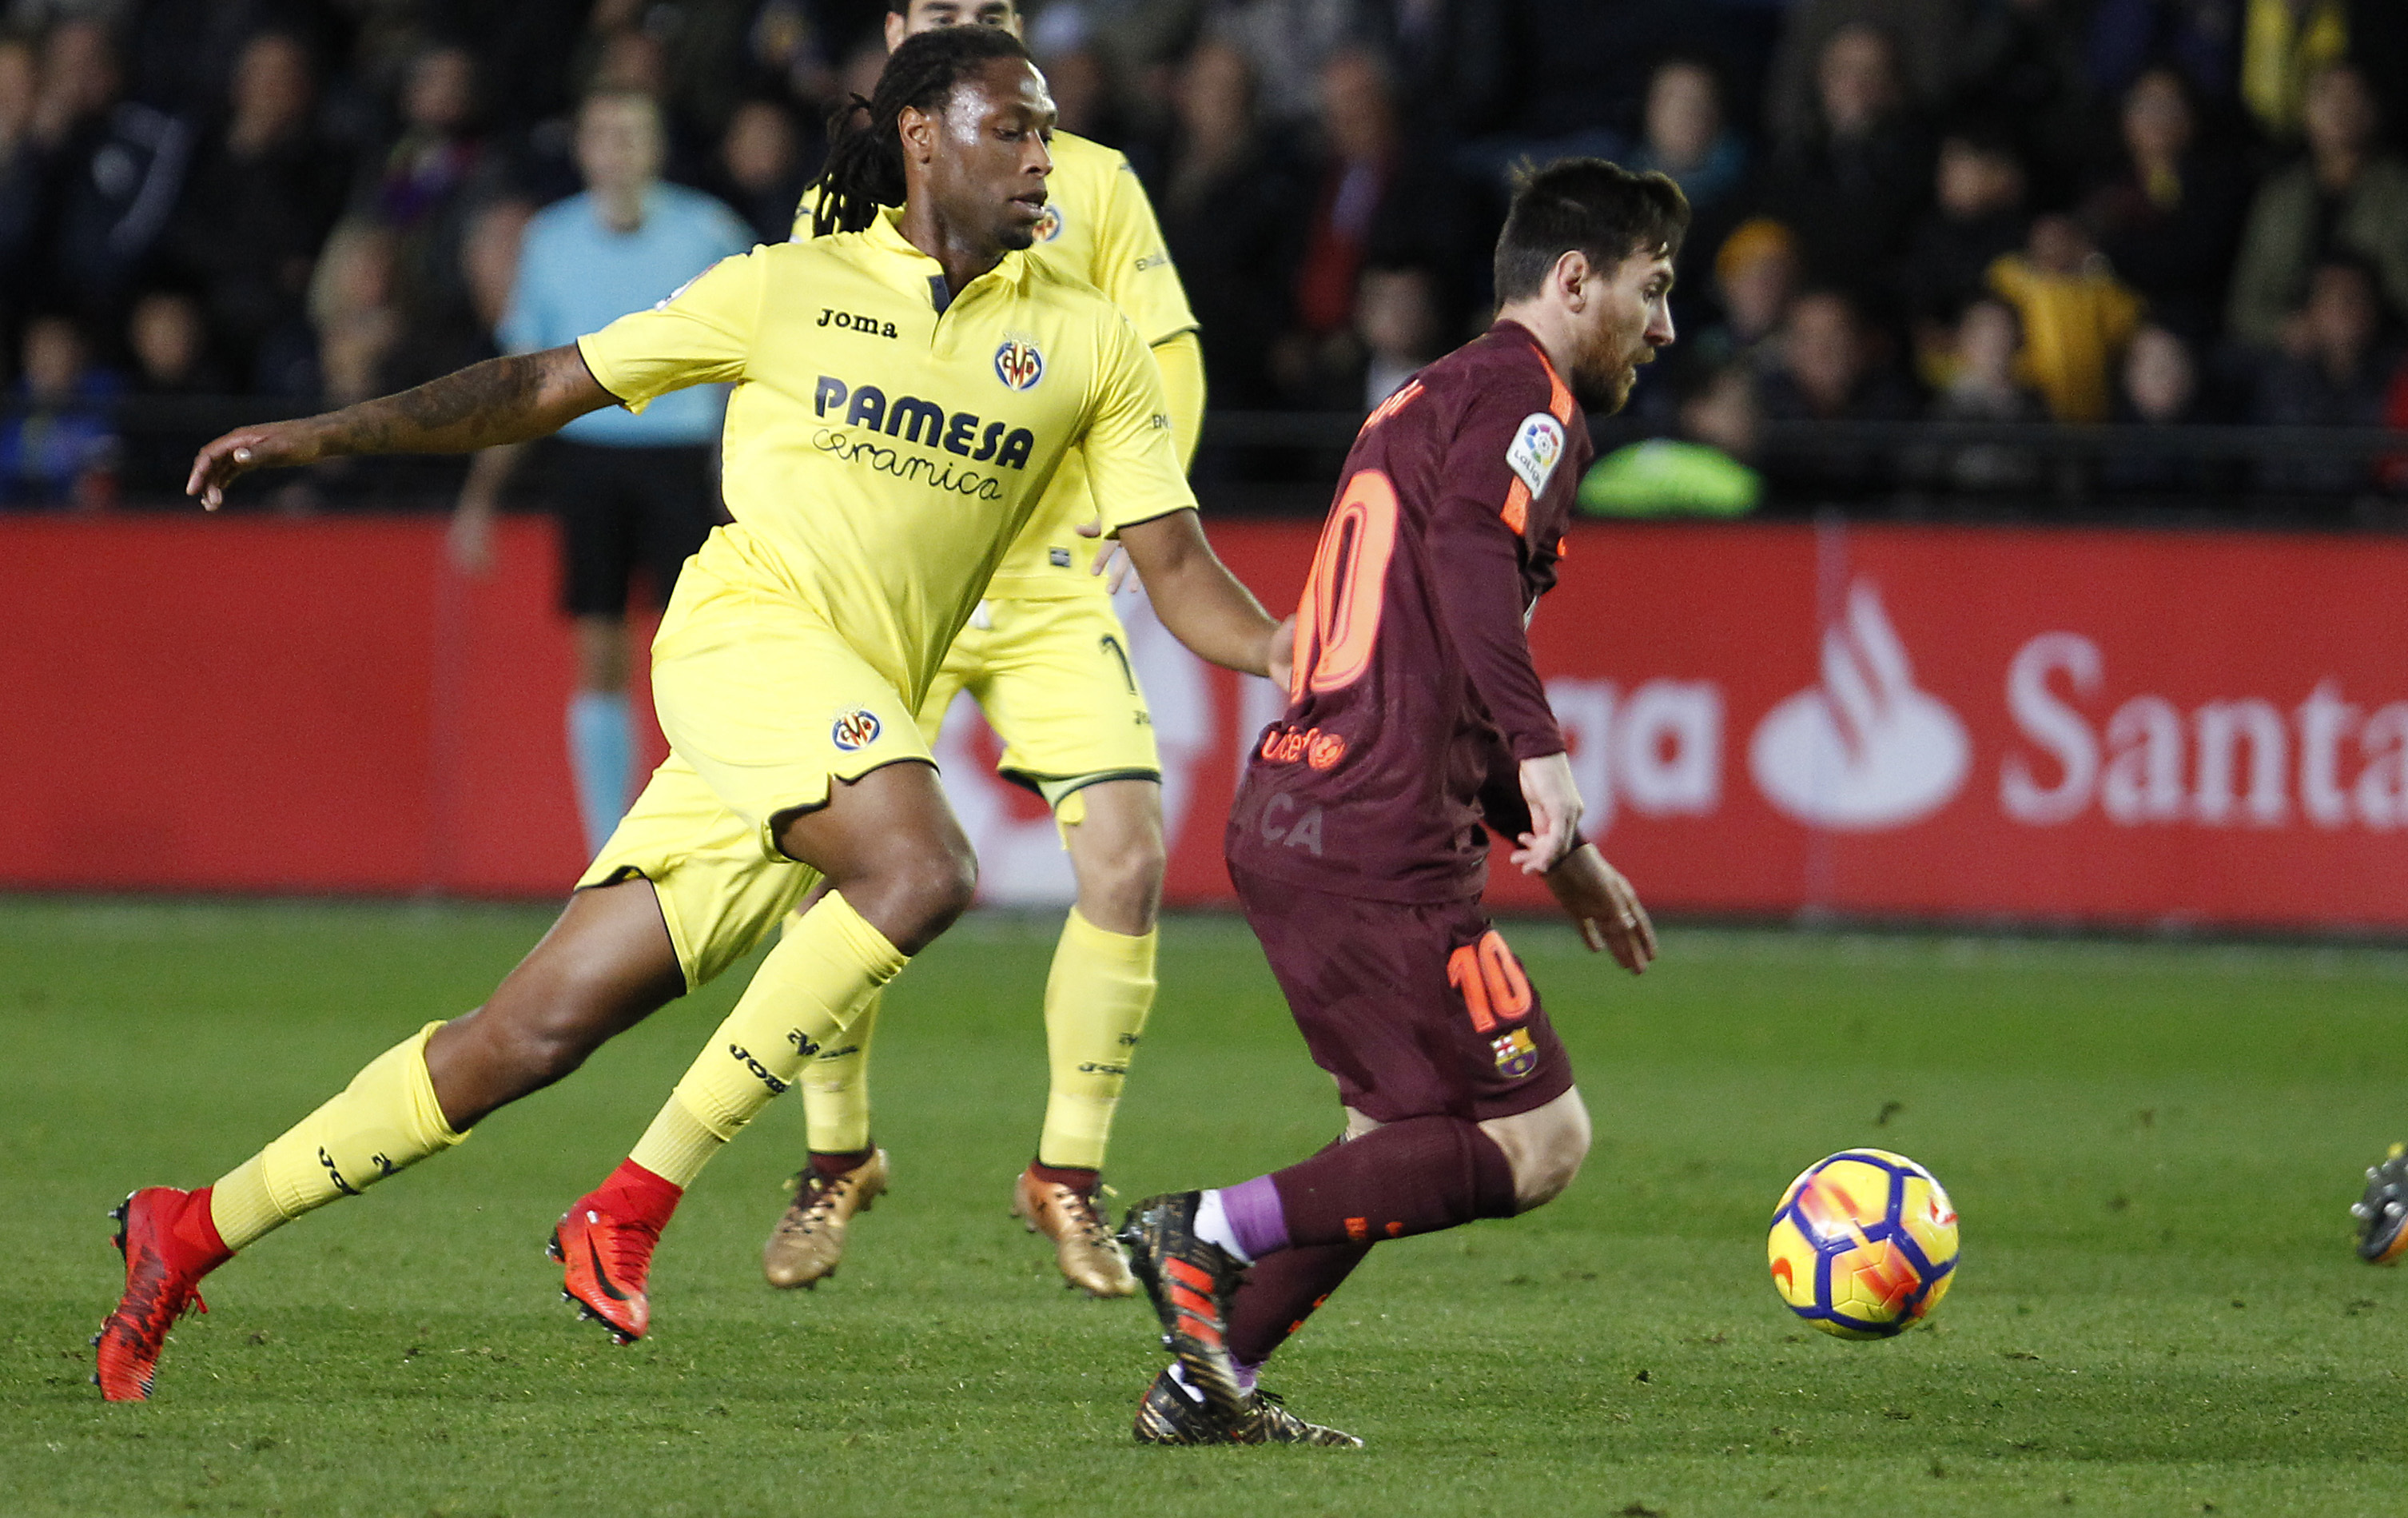 Villarreal player arrested after 'violent incident'